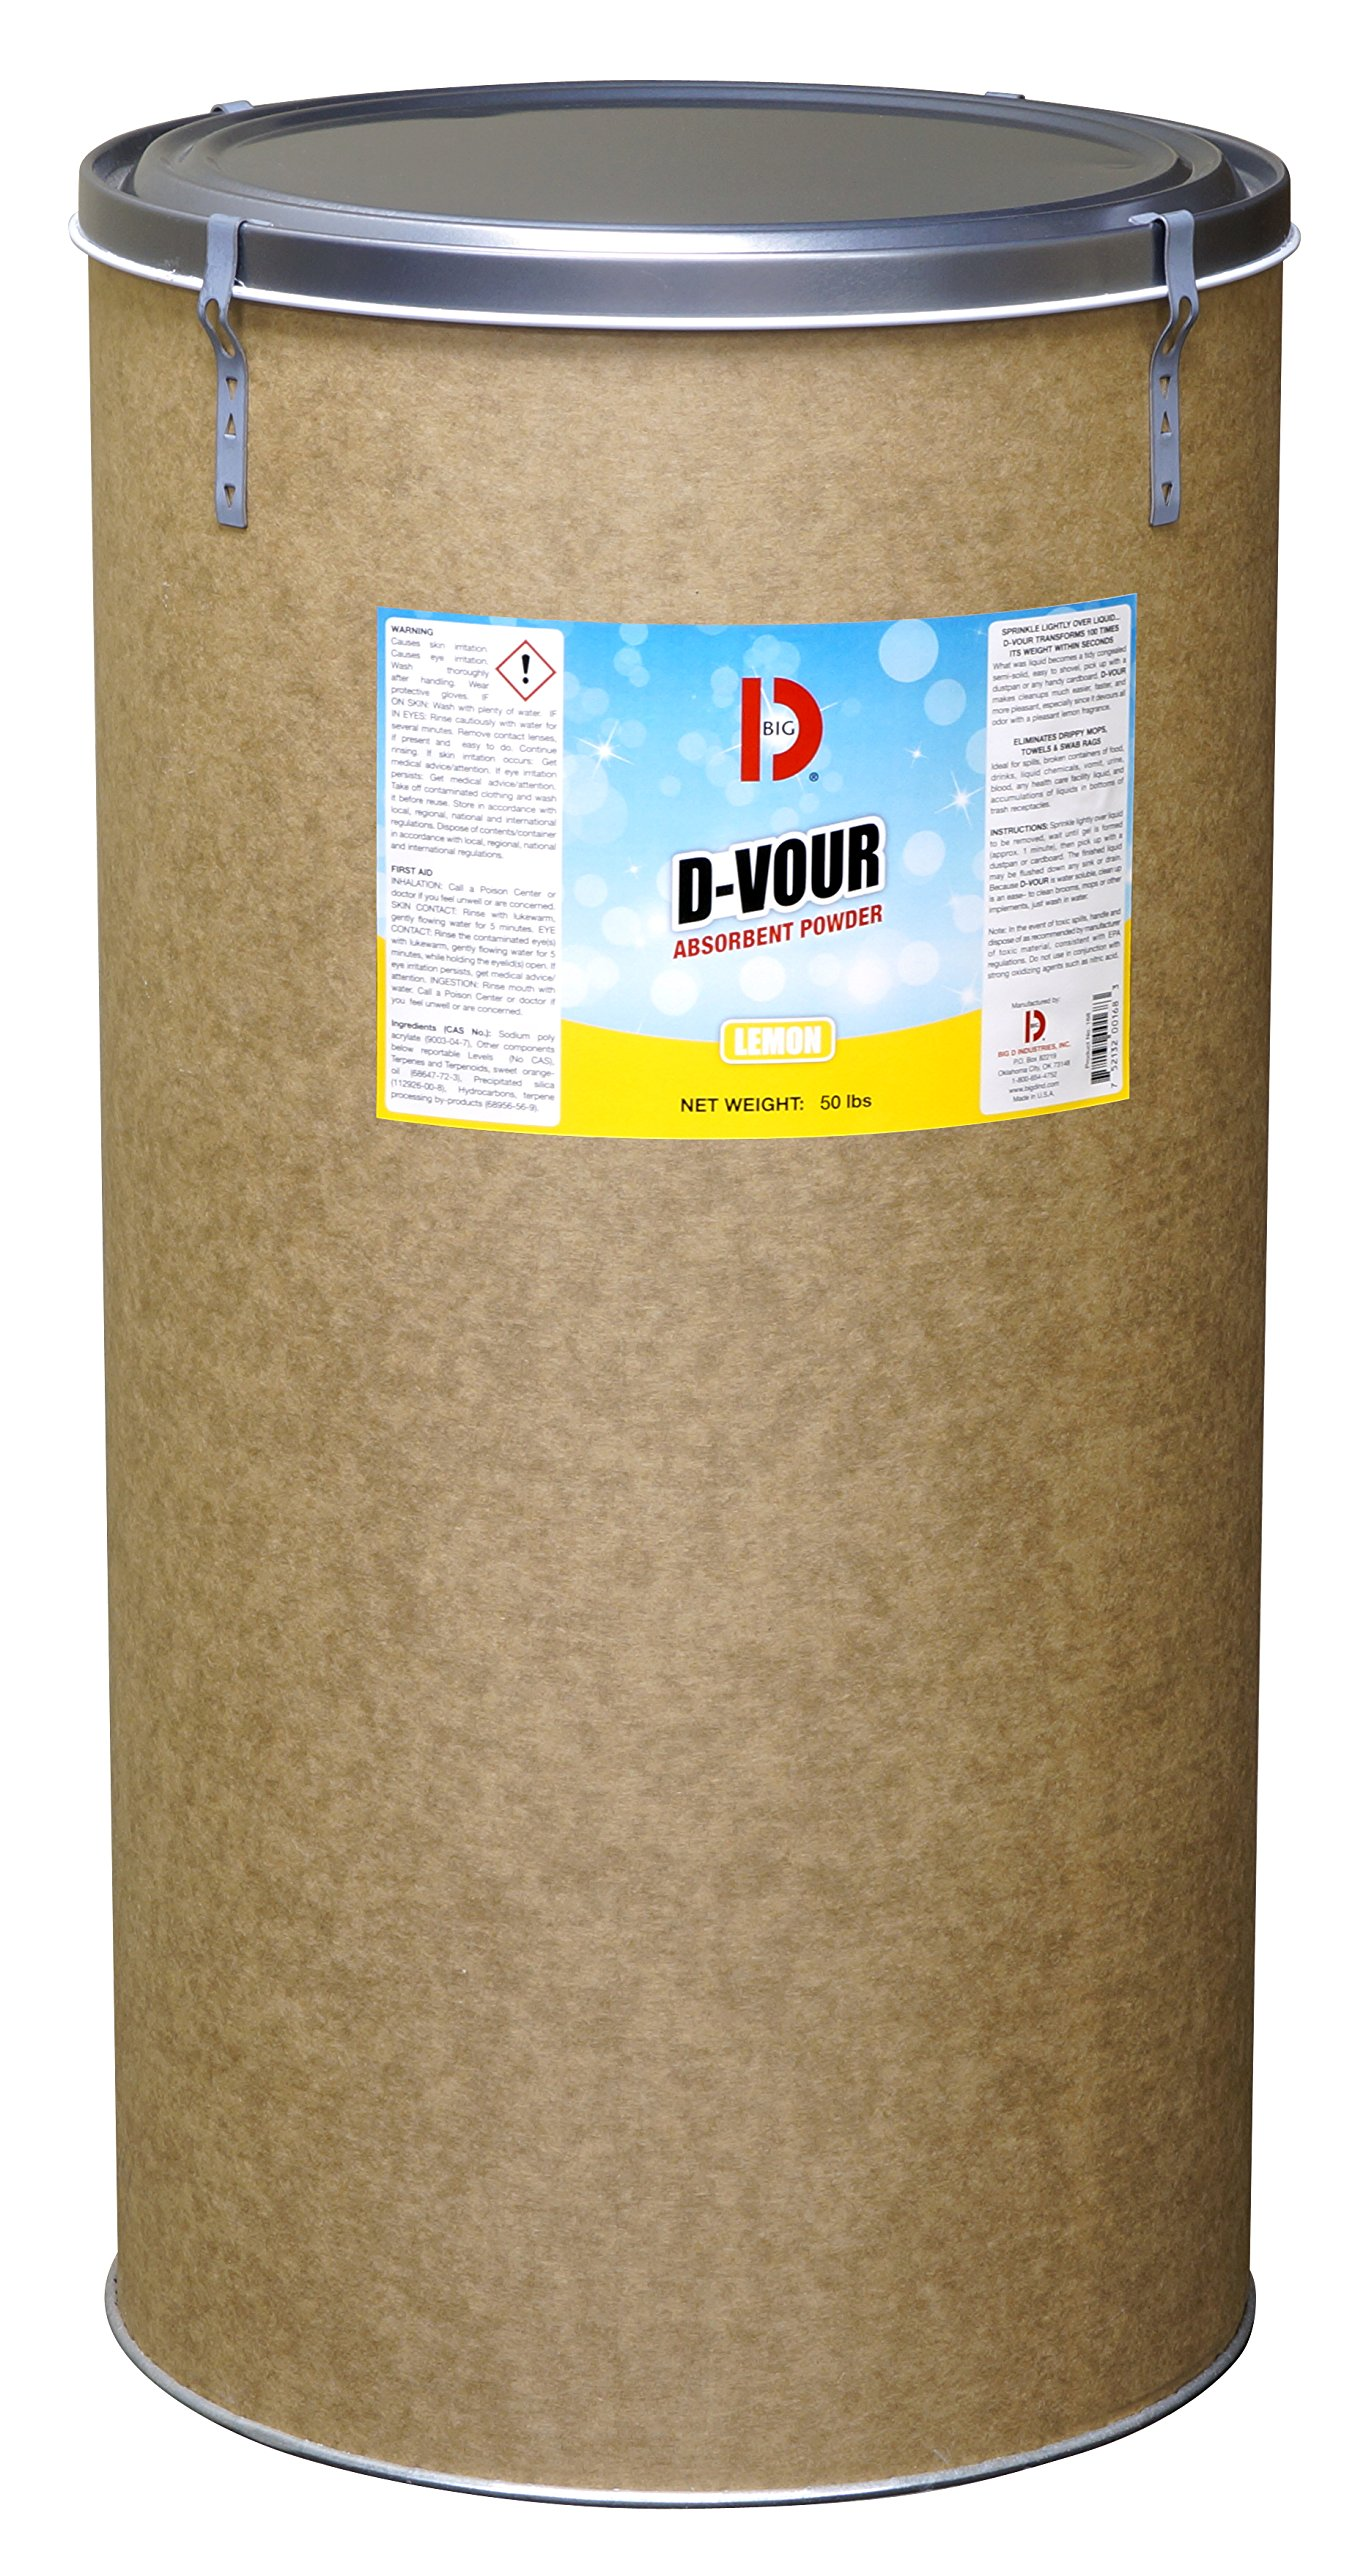 Big D 168 D-Vour Absorbent Powder, Lemon Fragrance, 50 lb Container - Absorbs accidental spills for easy clean-up - Ideal for use in schools, restaurants, health care facilities, grocery stores